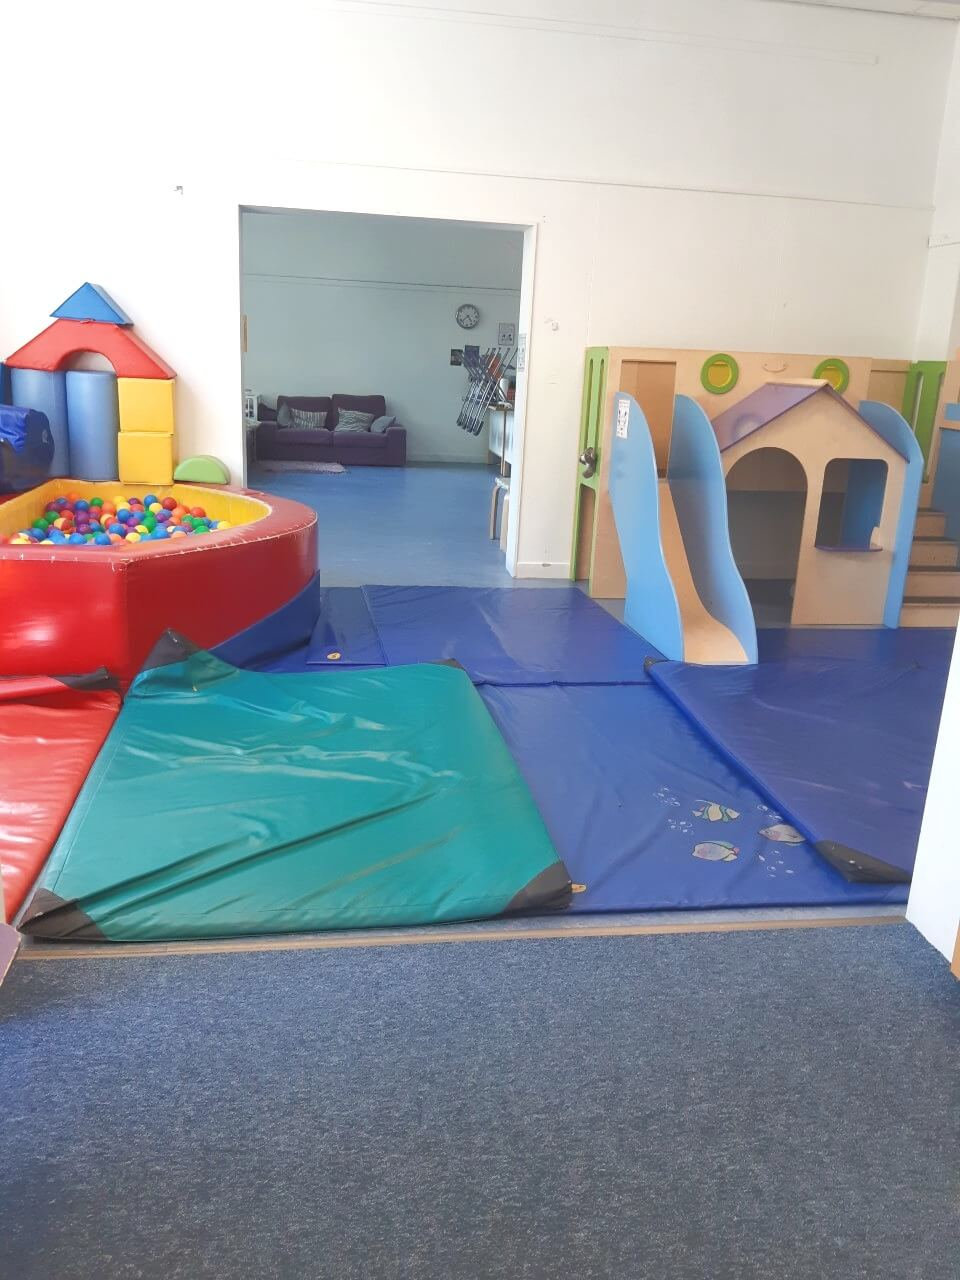 Book the venue for a kids party